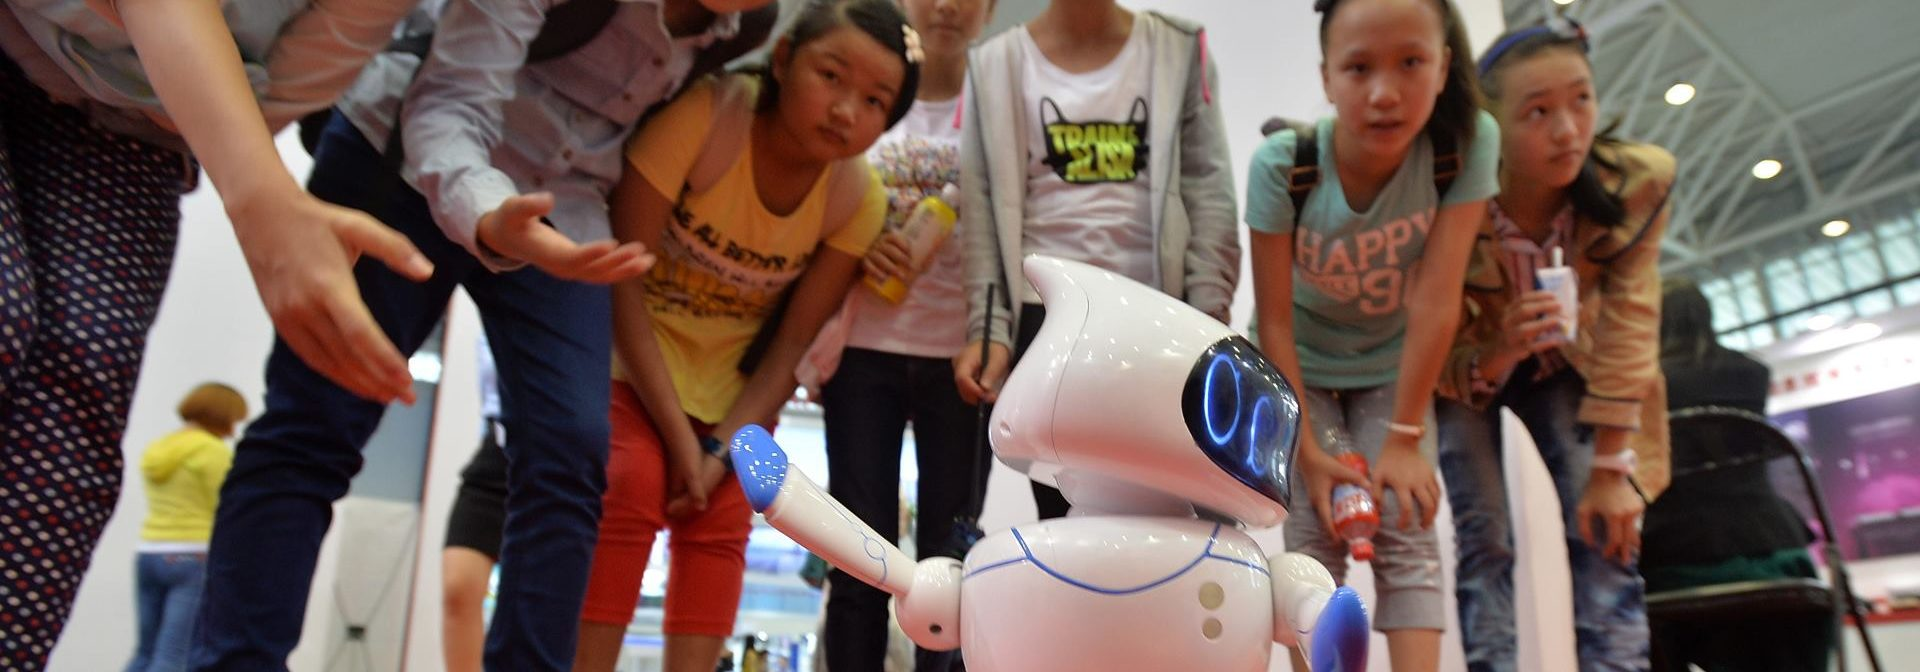 VIDEO: Peking domaćin tehnološkog eventaWorld Robot Conference 2015